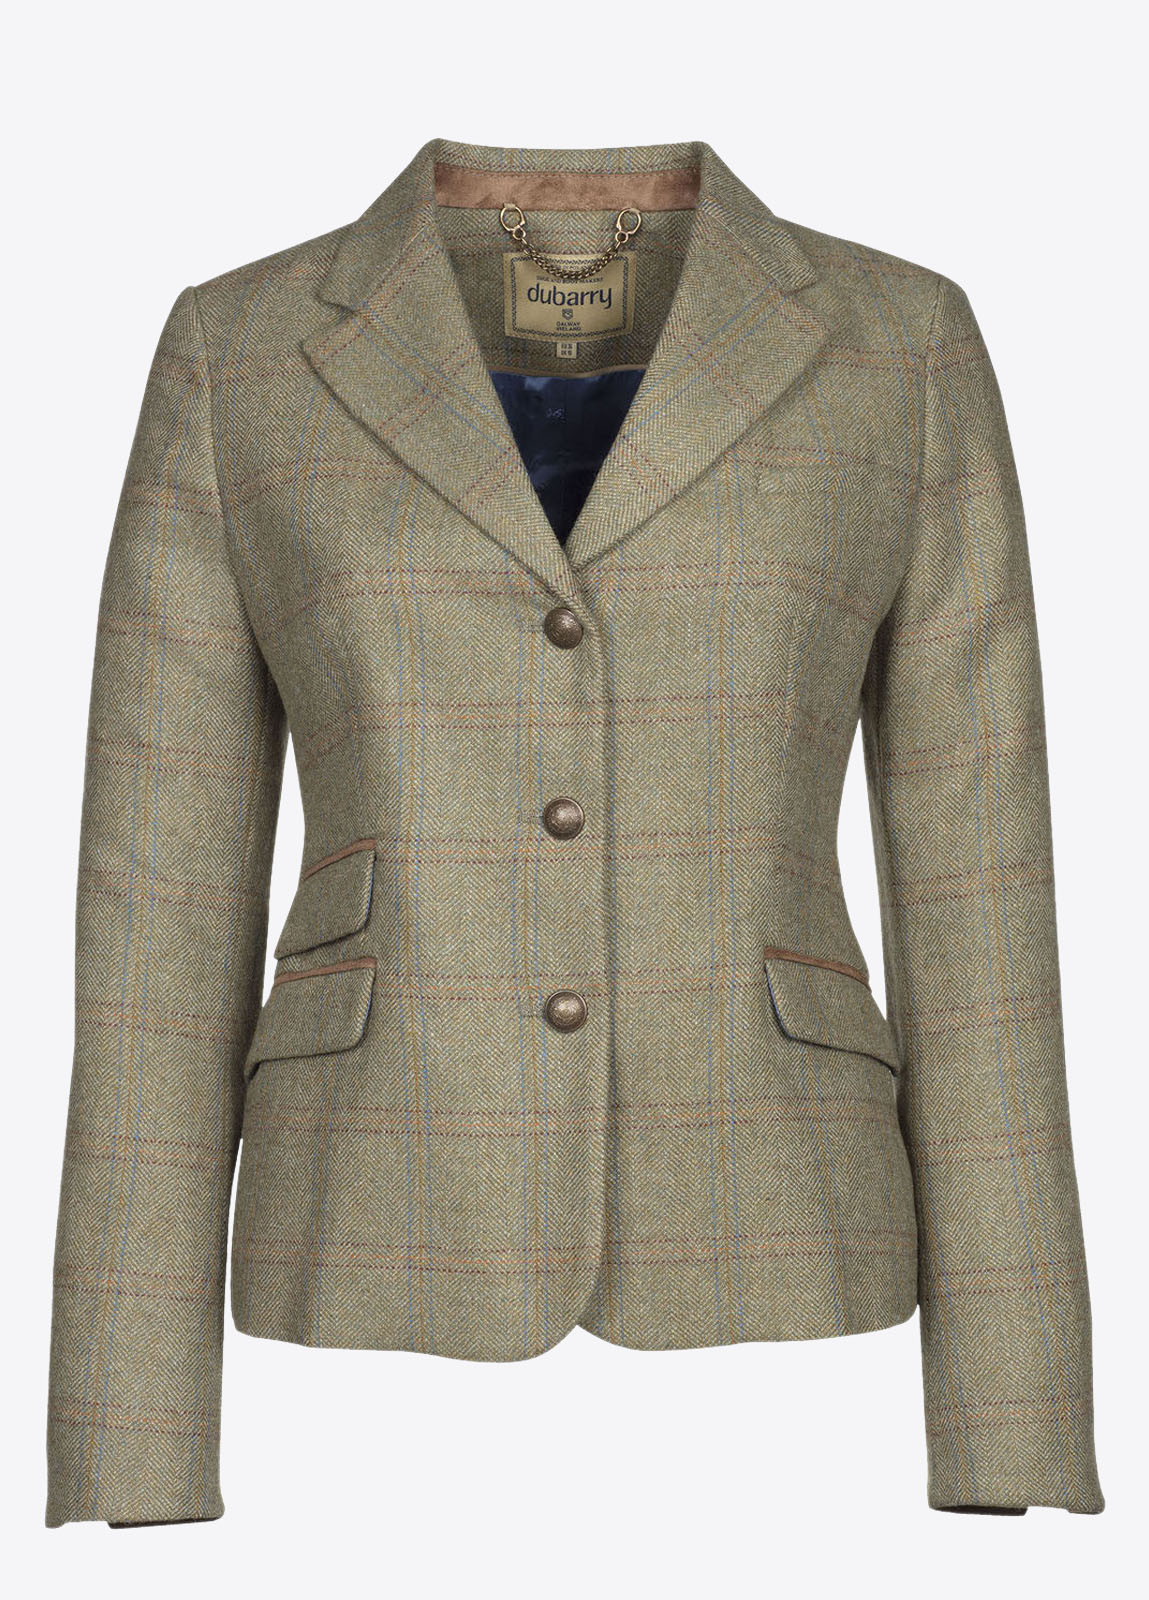 Buttercup Tweed Jacket - Acorn